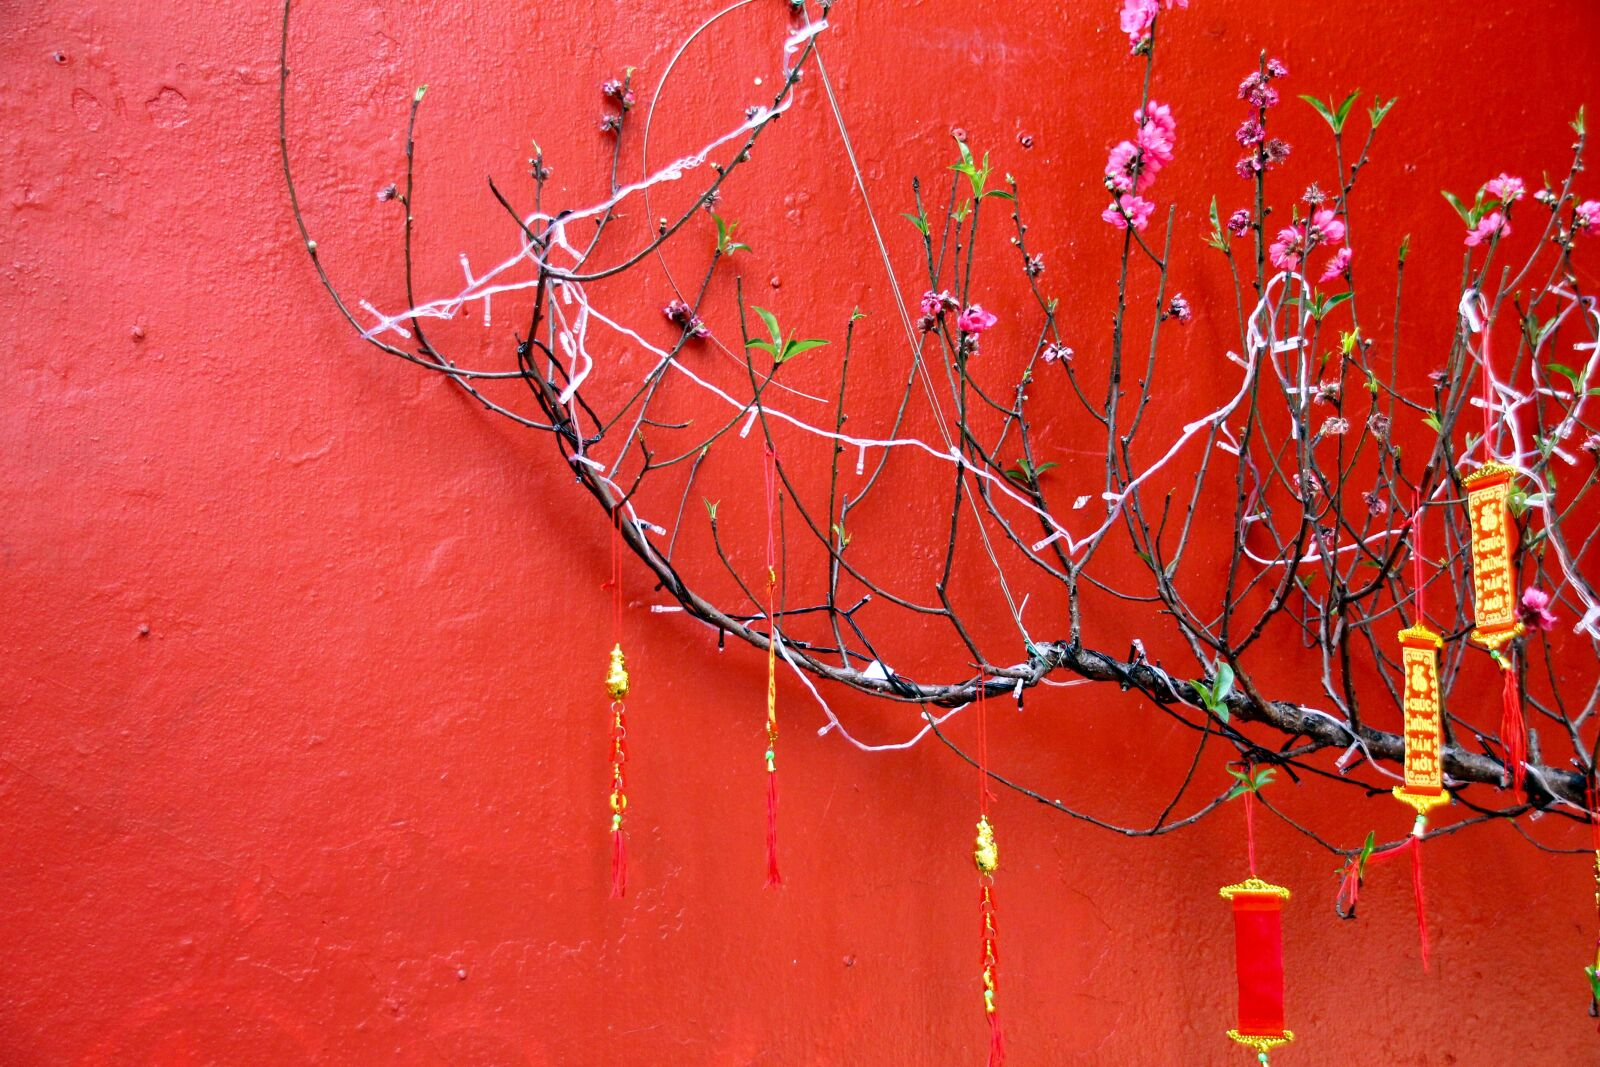 """Canon EOS 1100D (EOS Rebel T3 / EOS Kiss X50) sample photo. """"Fortune, tradition, festival"""" photography"""